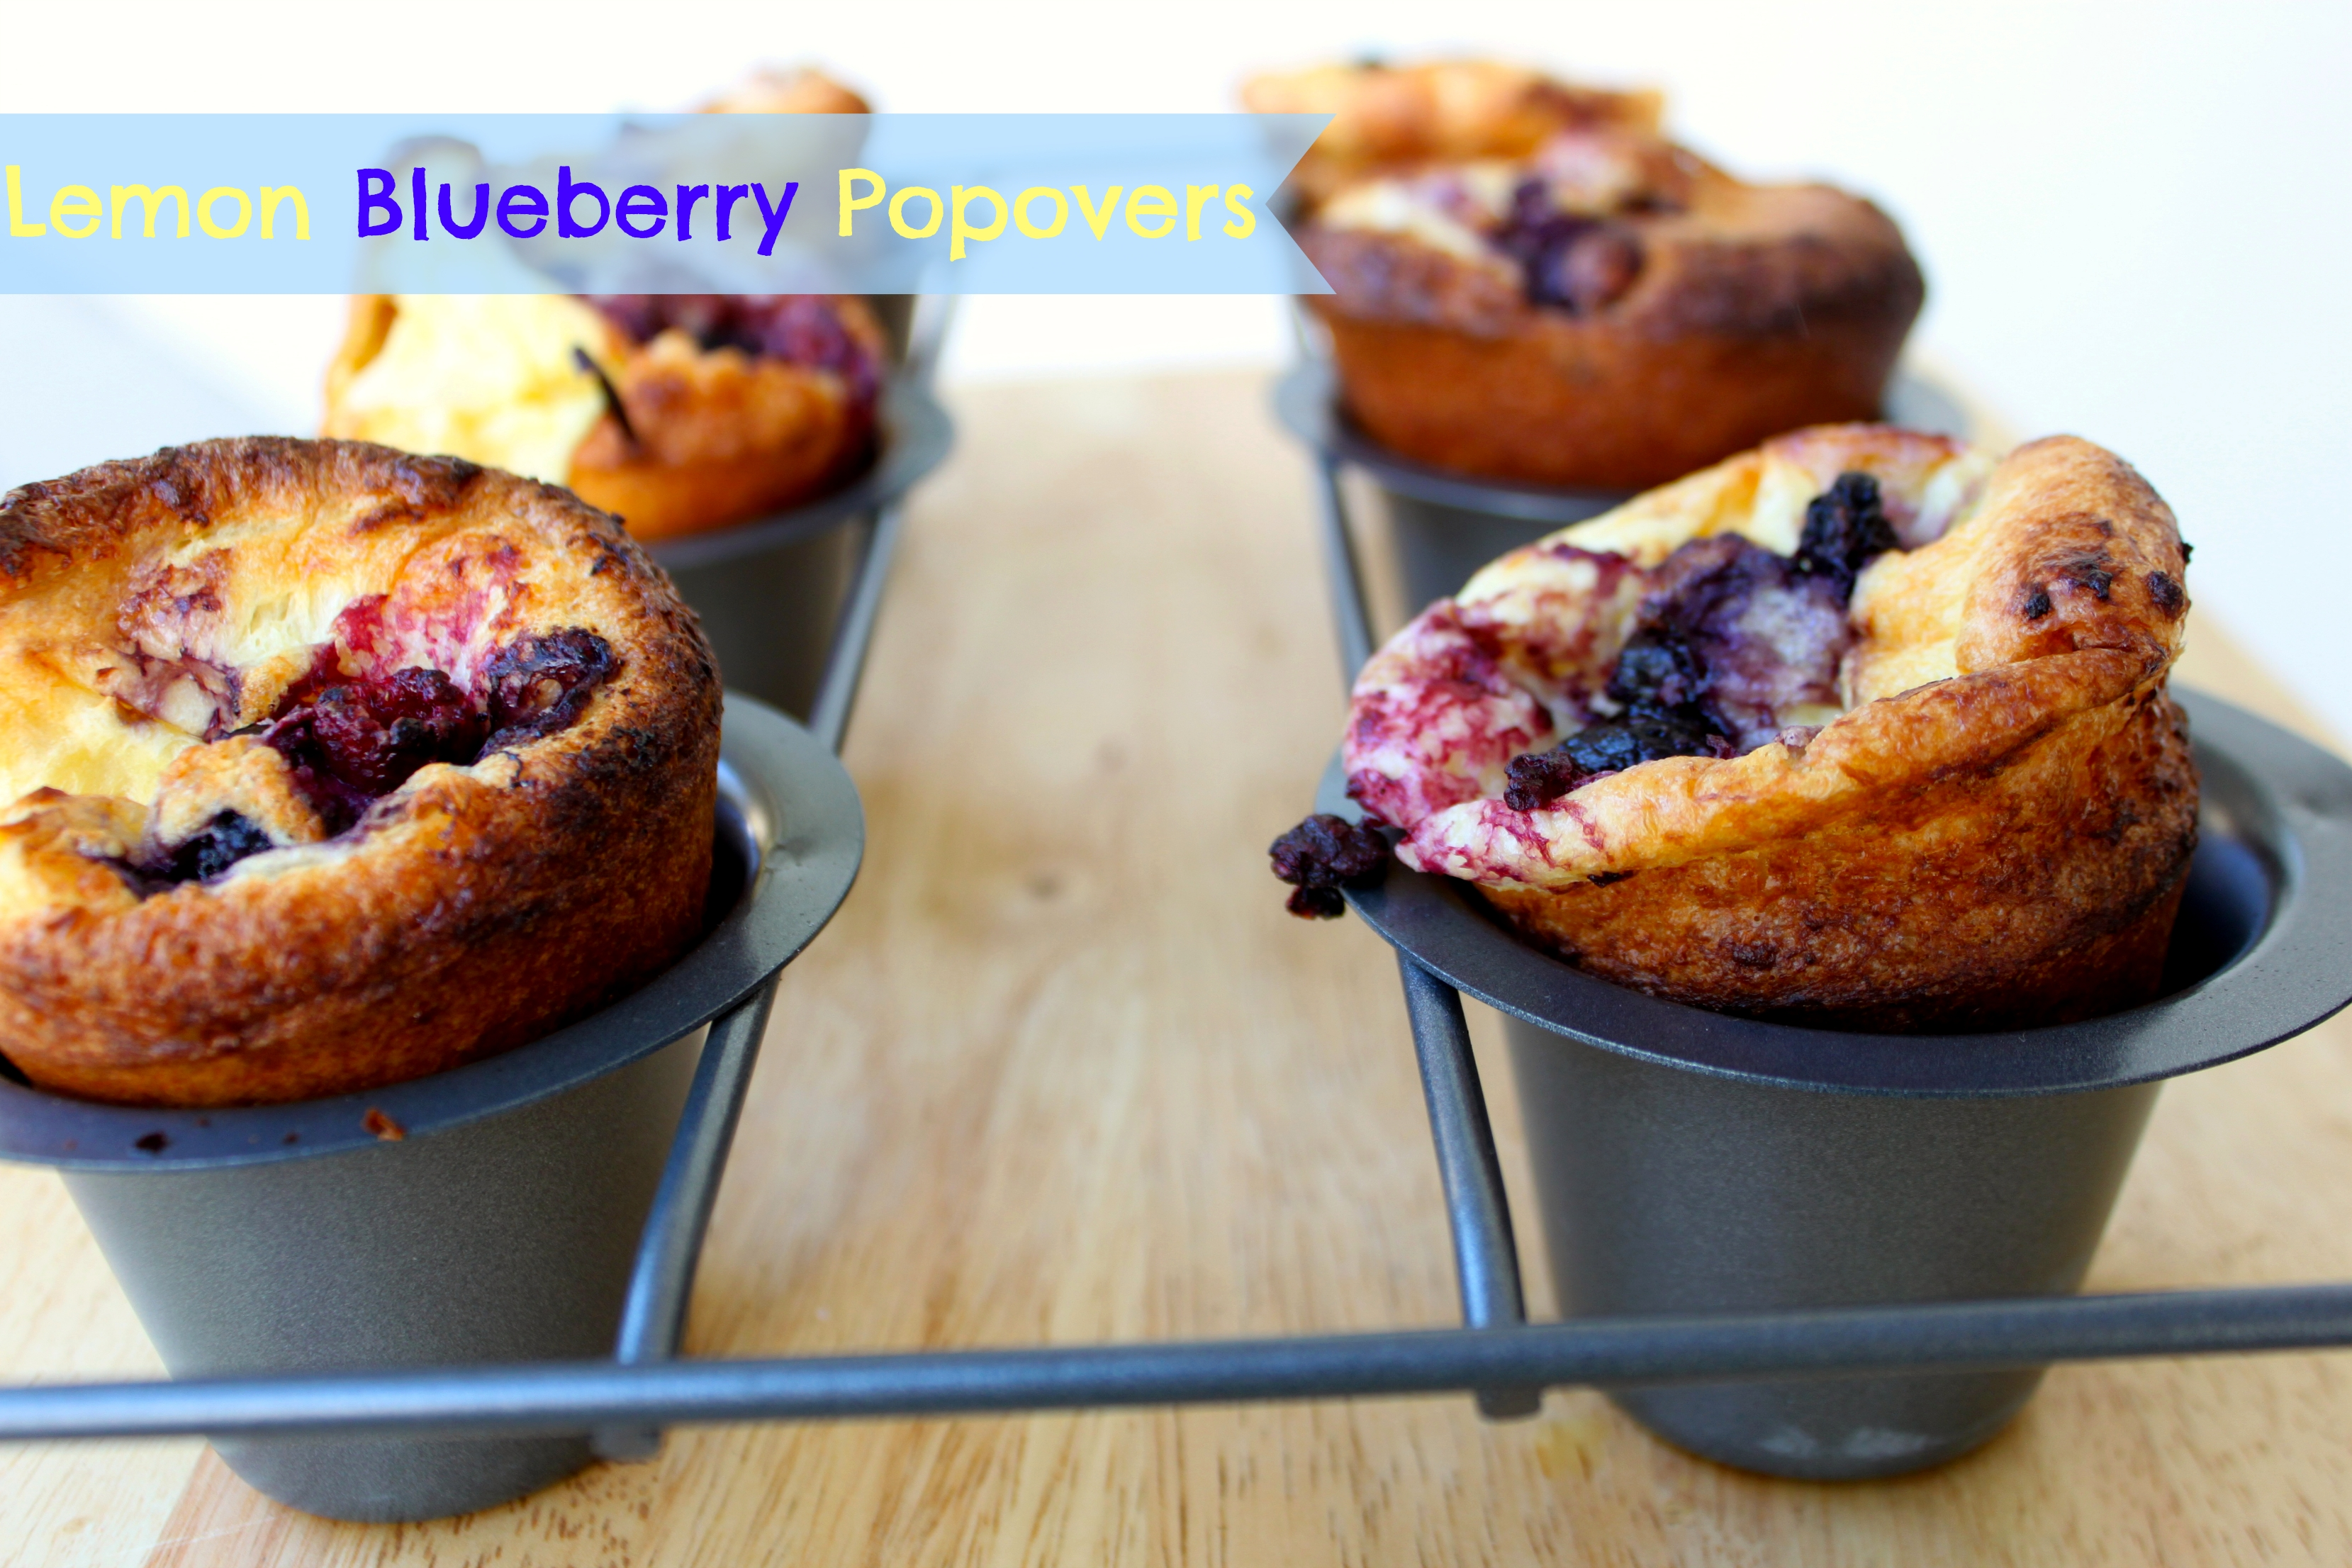 National Blueberry Popover Day Blueberry Lemon Popovers